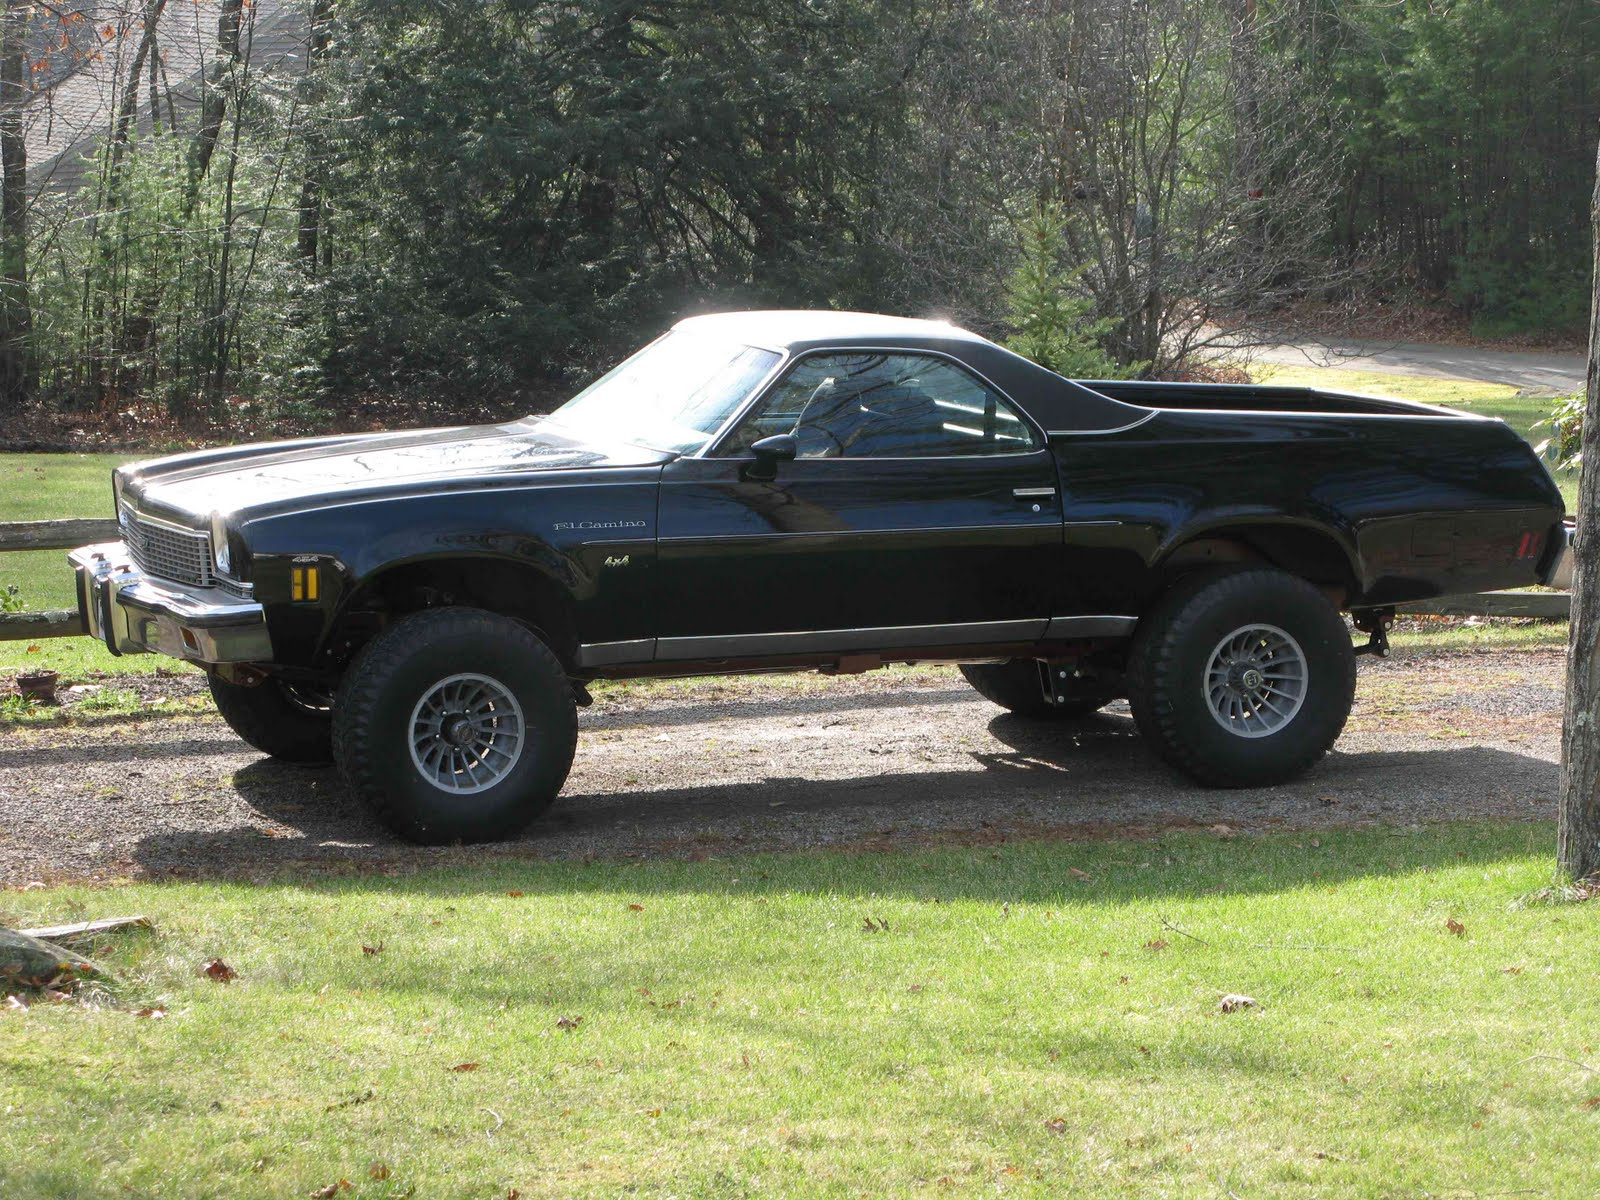 4wd El Camino On Craigslist Autos Post